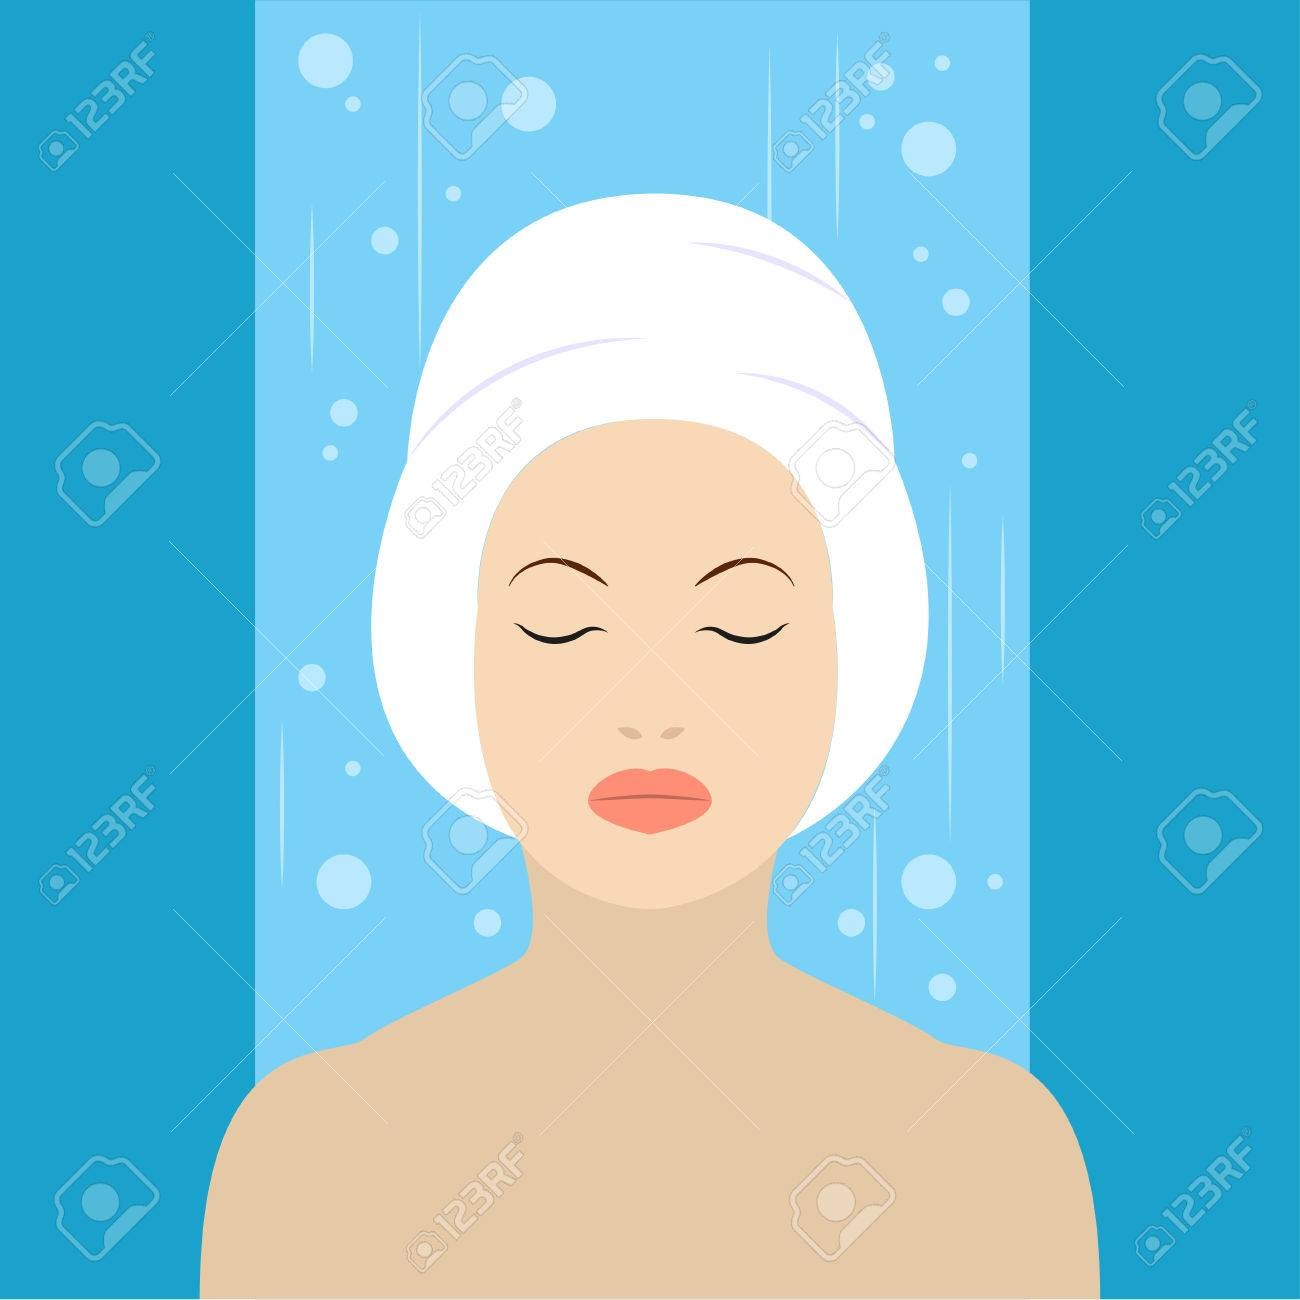 Girl With White Towel On Head In The Shower Flat Design Royalty Free ...